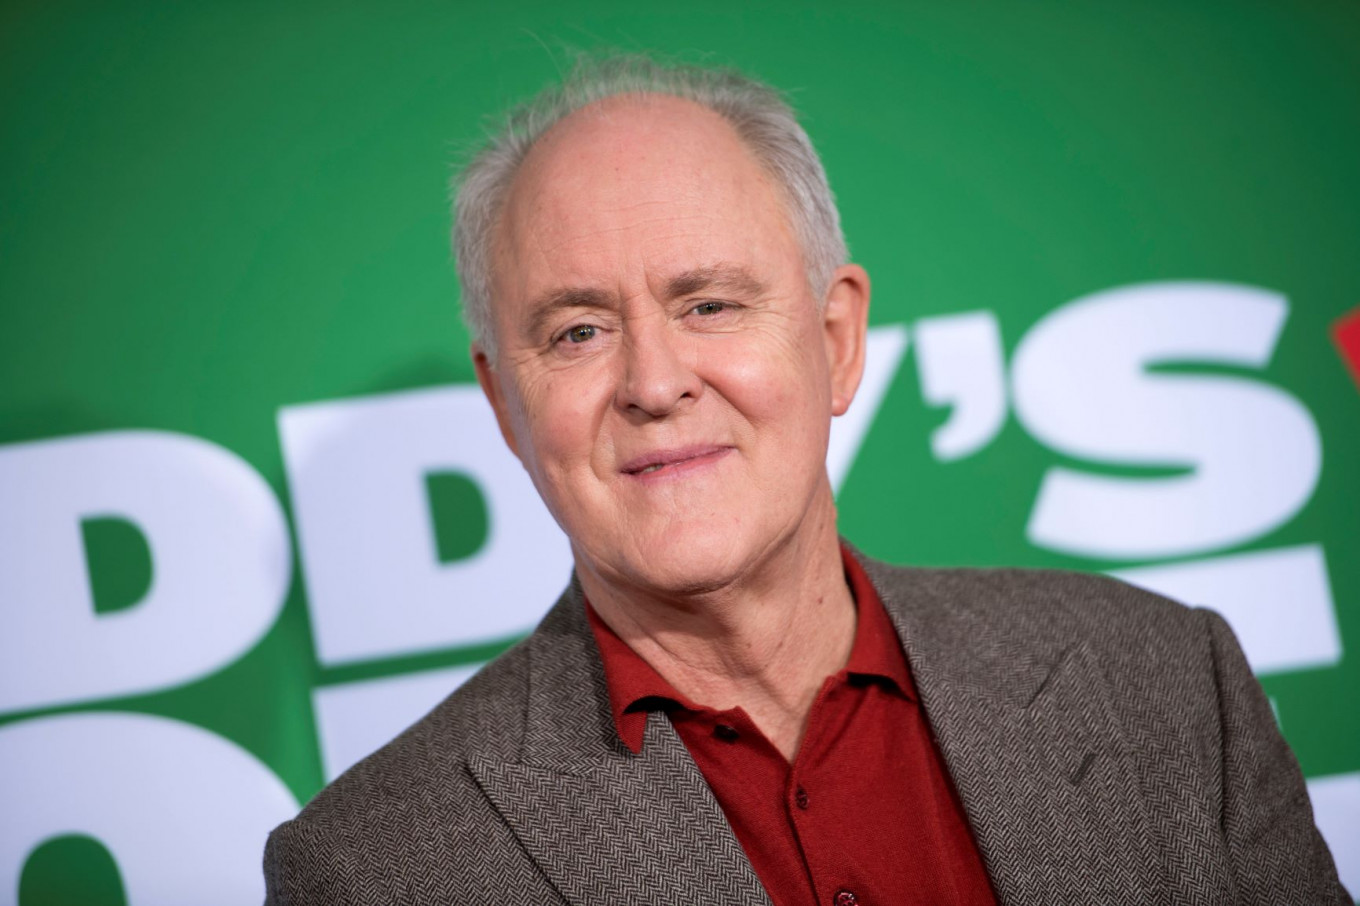 John Lithgow: A mentor on and off camera